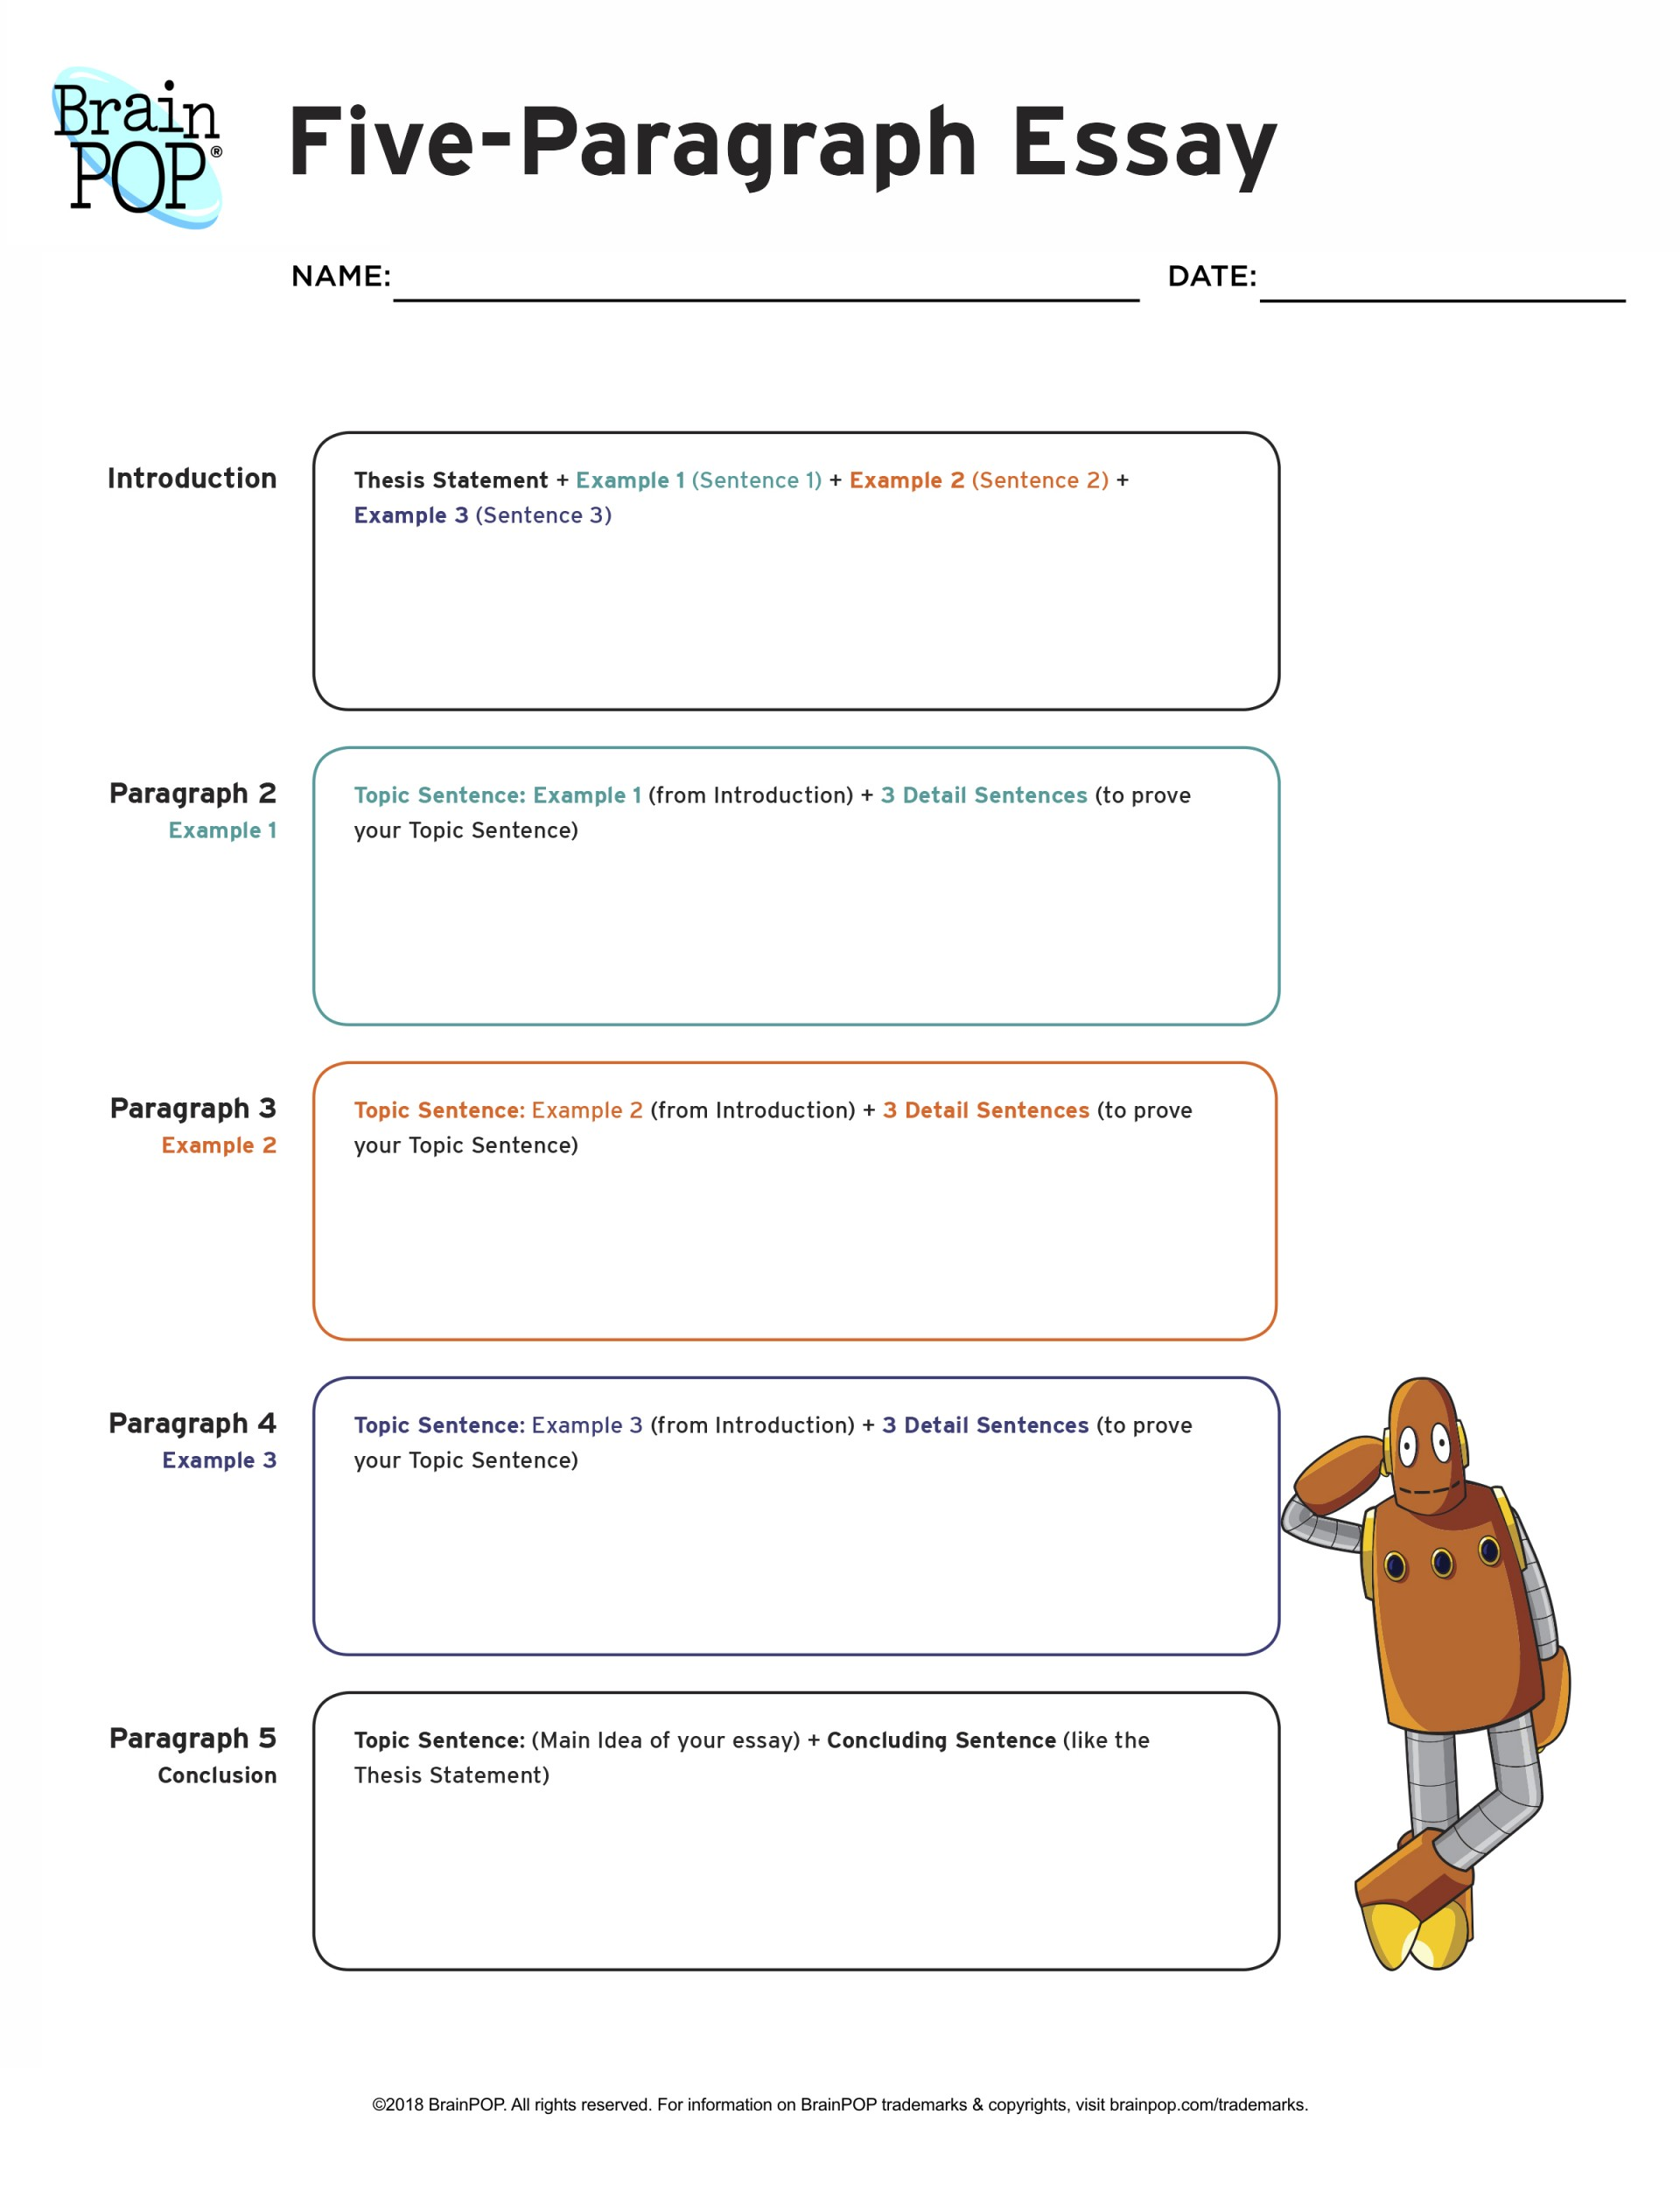 002 Five Paragraph Essay Graphic Organizer Writing Stunning A 5 Sample Pdf Outline Of Template 1920